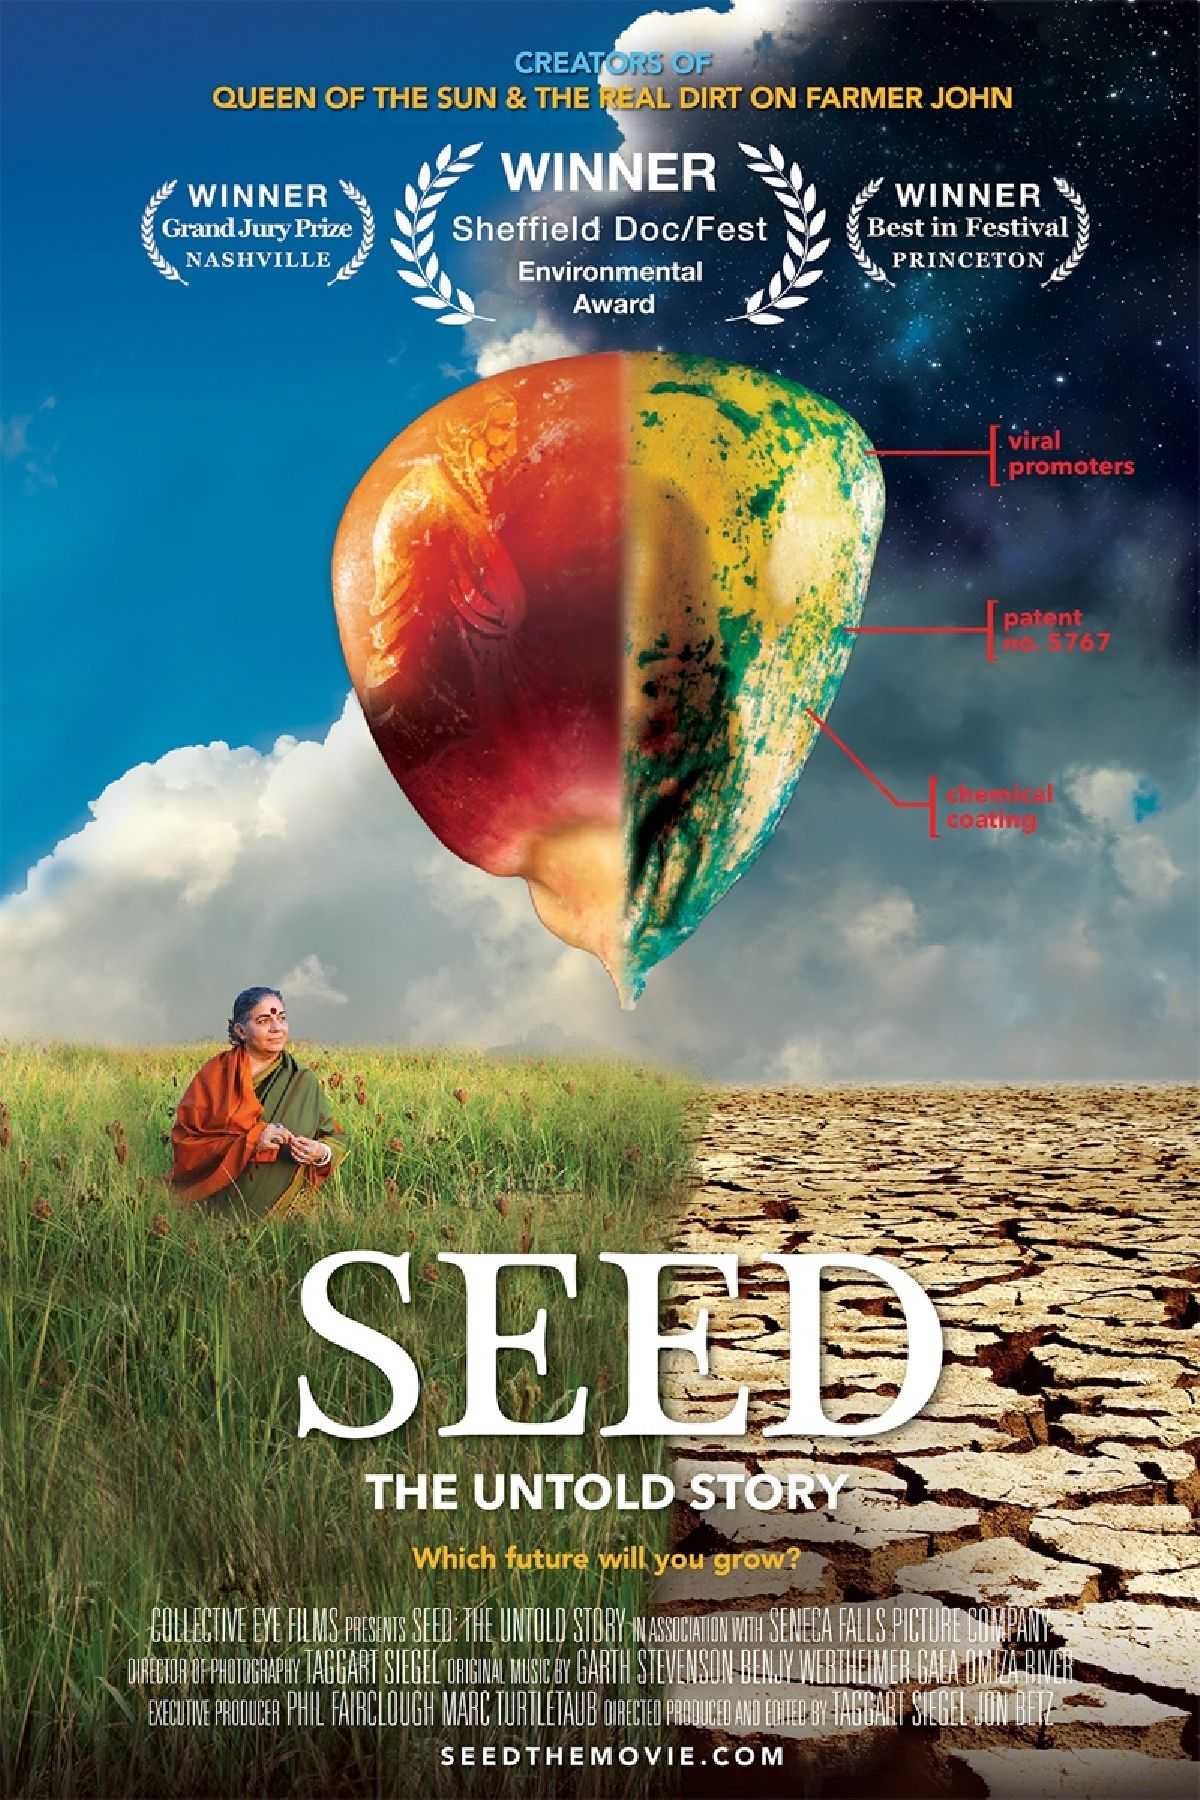 'SEED: The Untold Story' movie poster